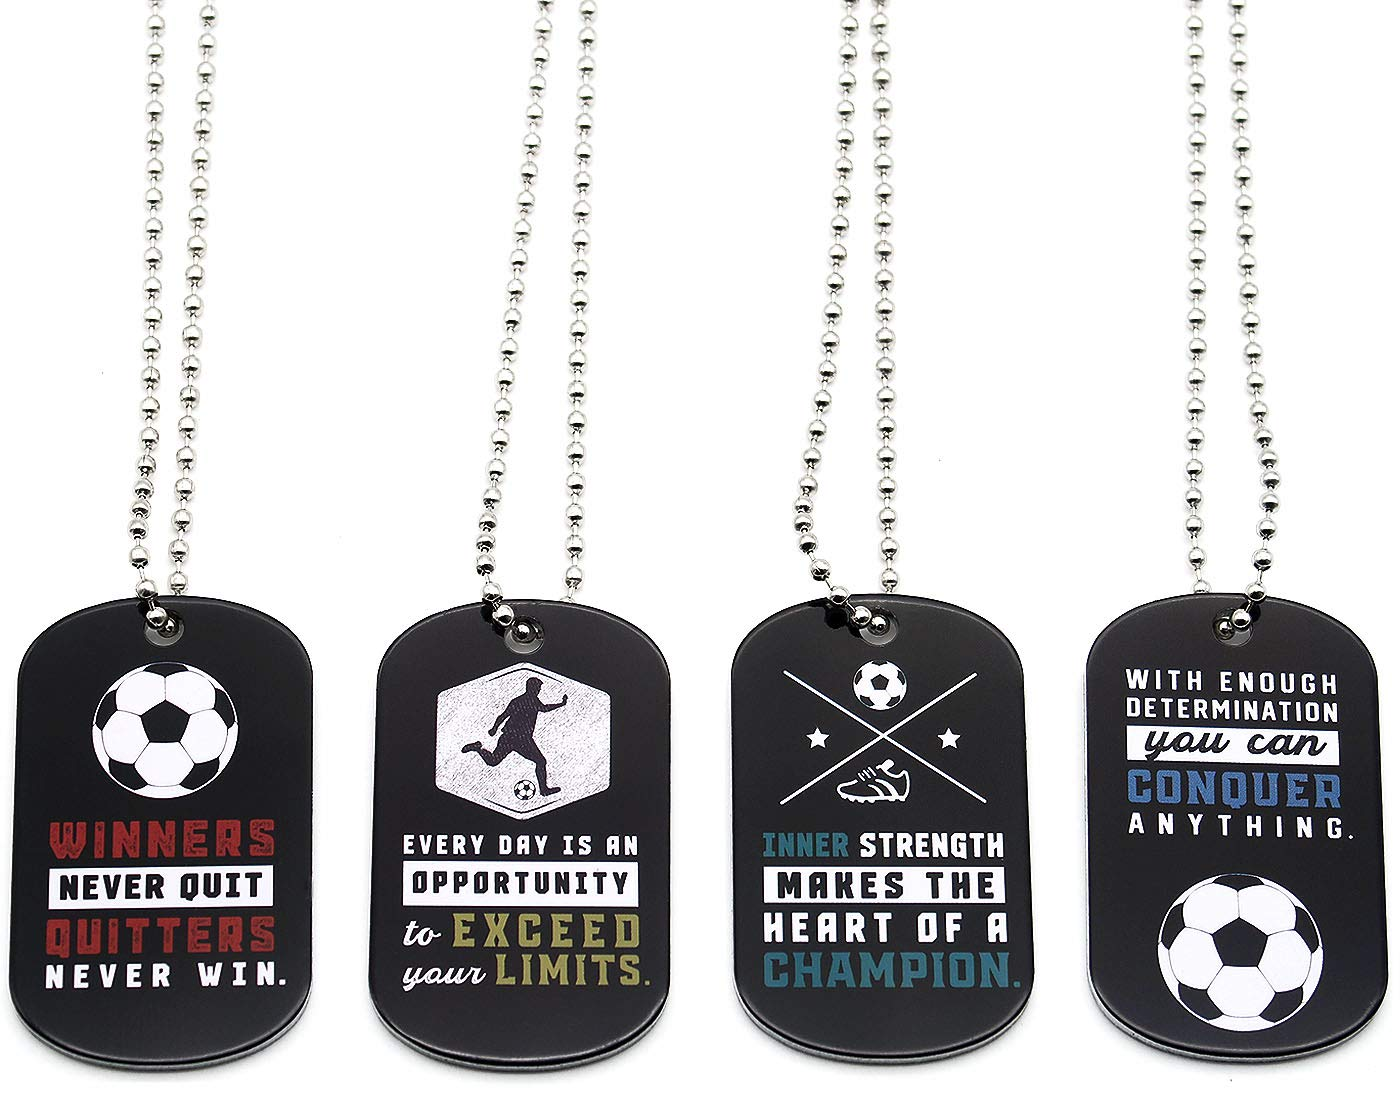 Party Favors Sports Gifts Uniform Supplies for Soccer Players Fans Team Members 12-Pack Soccer Motivational Dog Tag Necklaces Wholesale Bulk Pack of 1 Dozen Necklaces